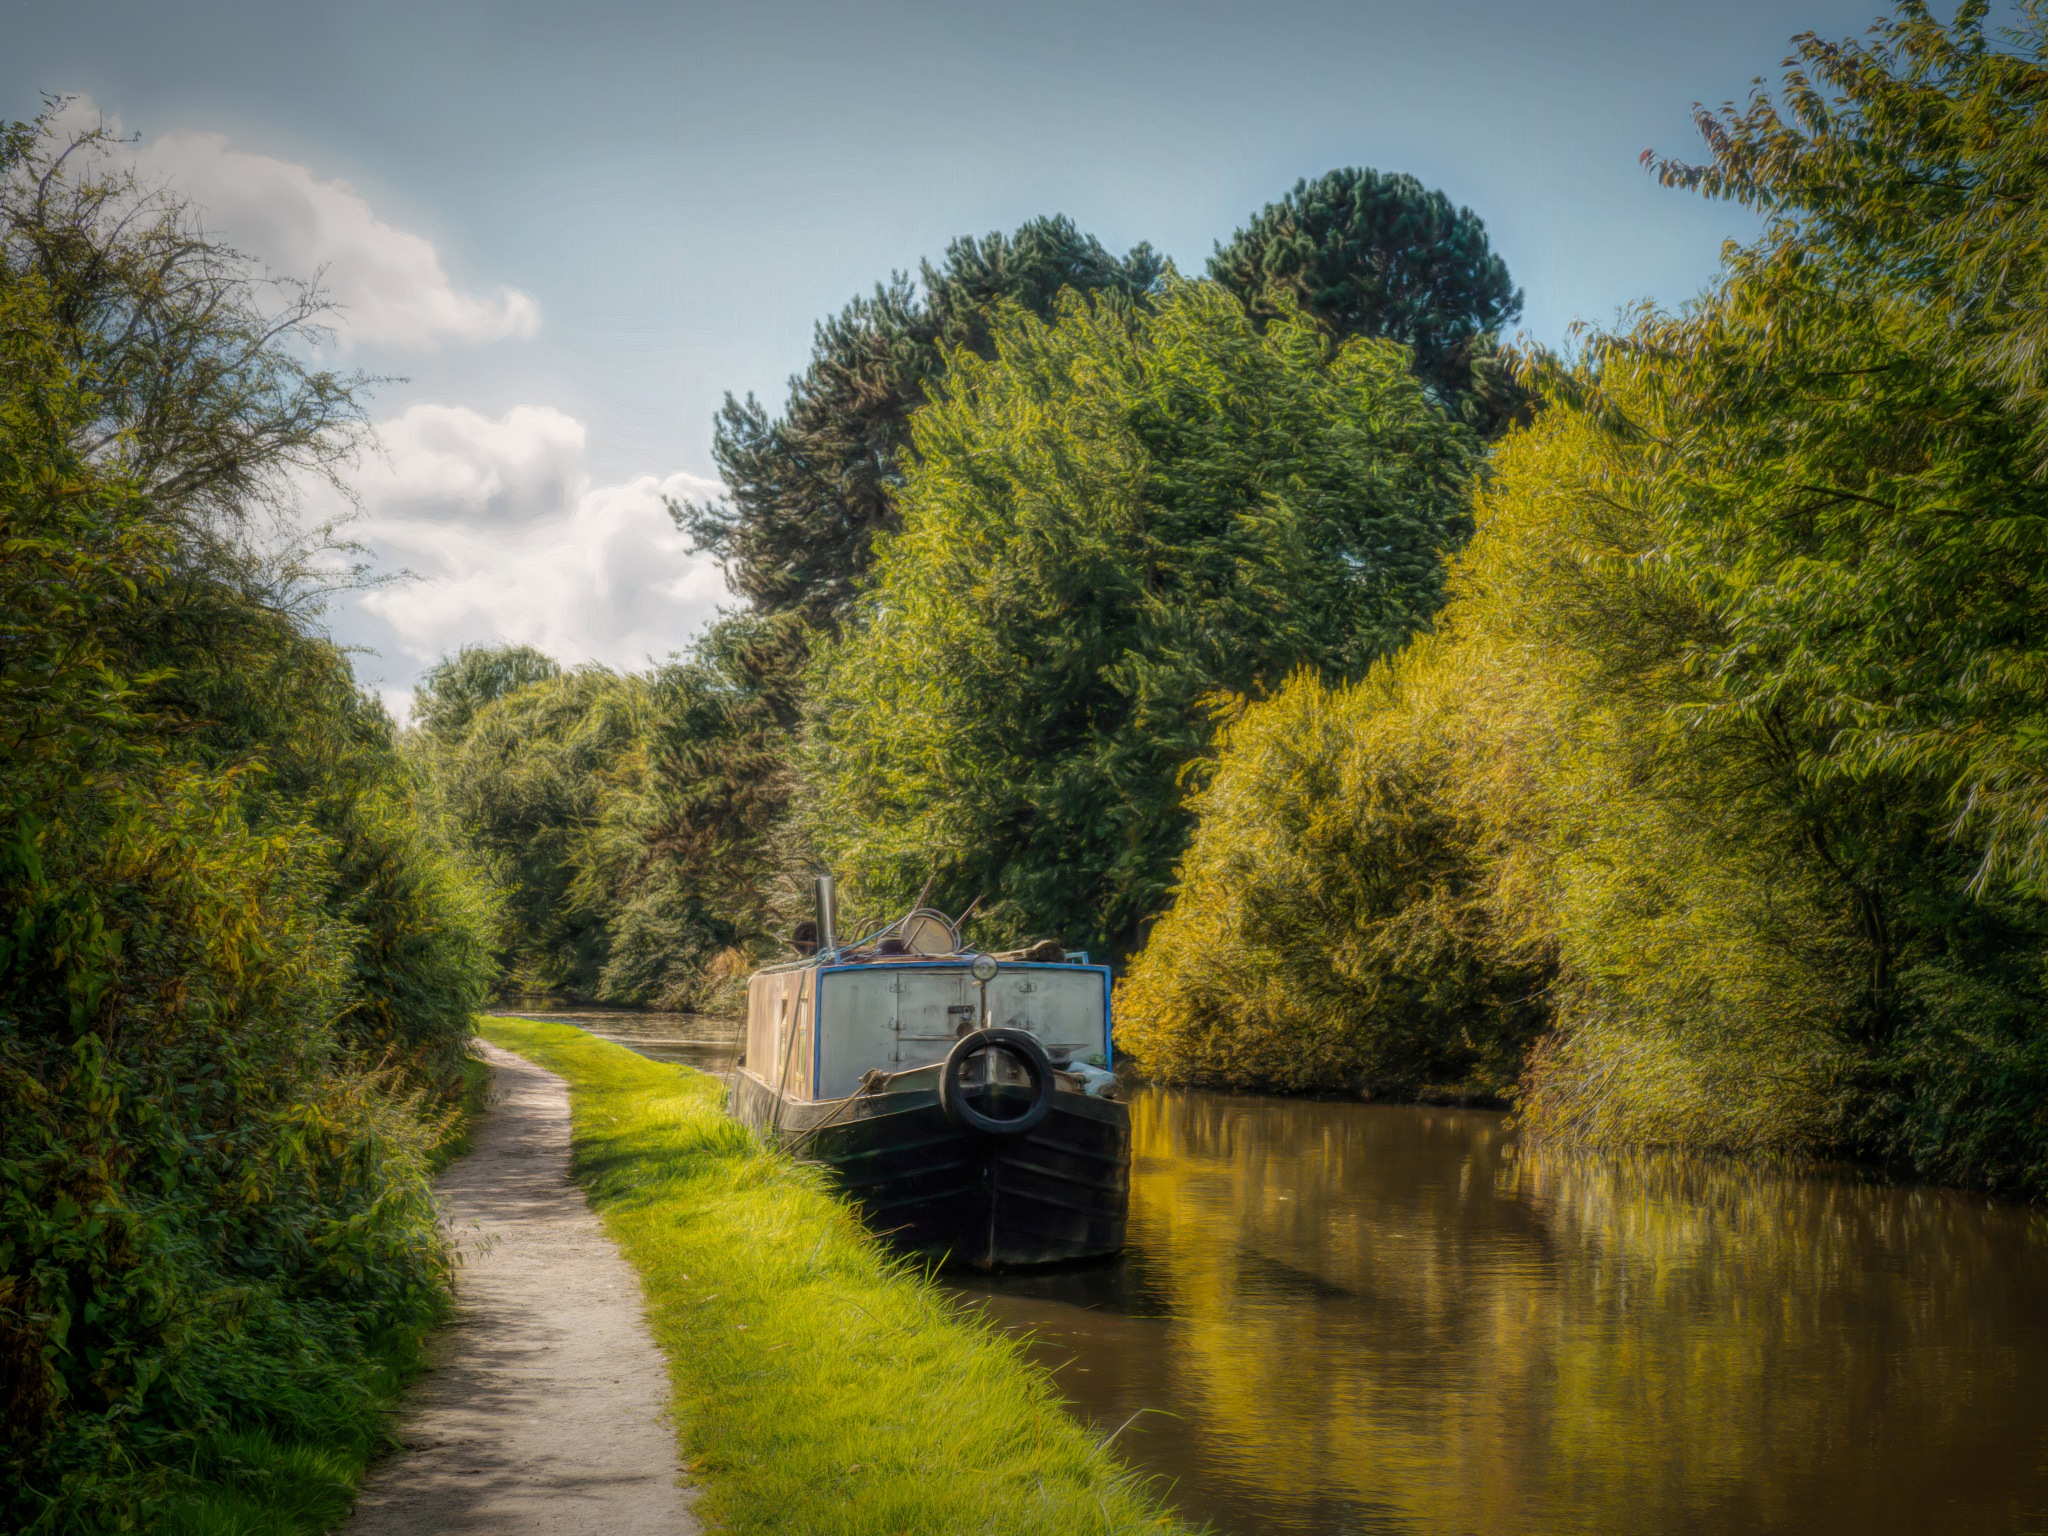 One More Canal Boat by Sarah Walters